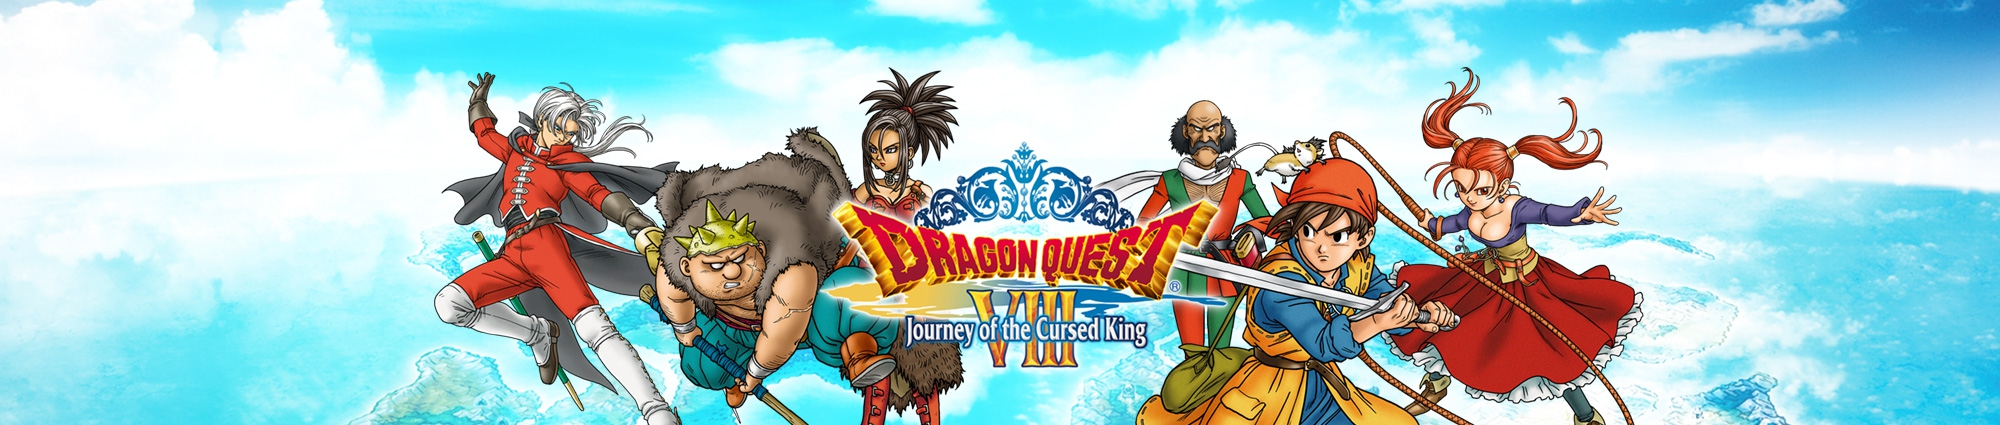 Banner Dragon Quest VIII Journey of the Cursed King